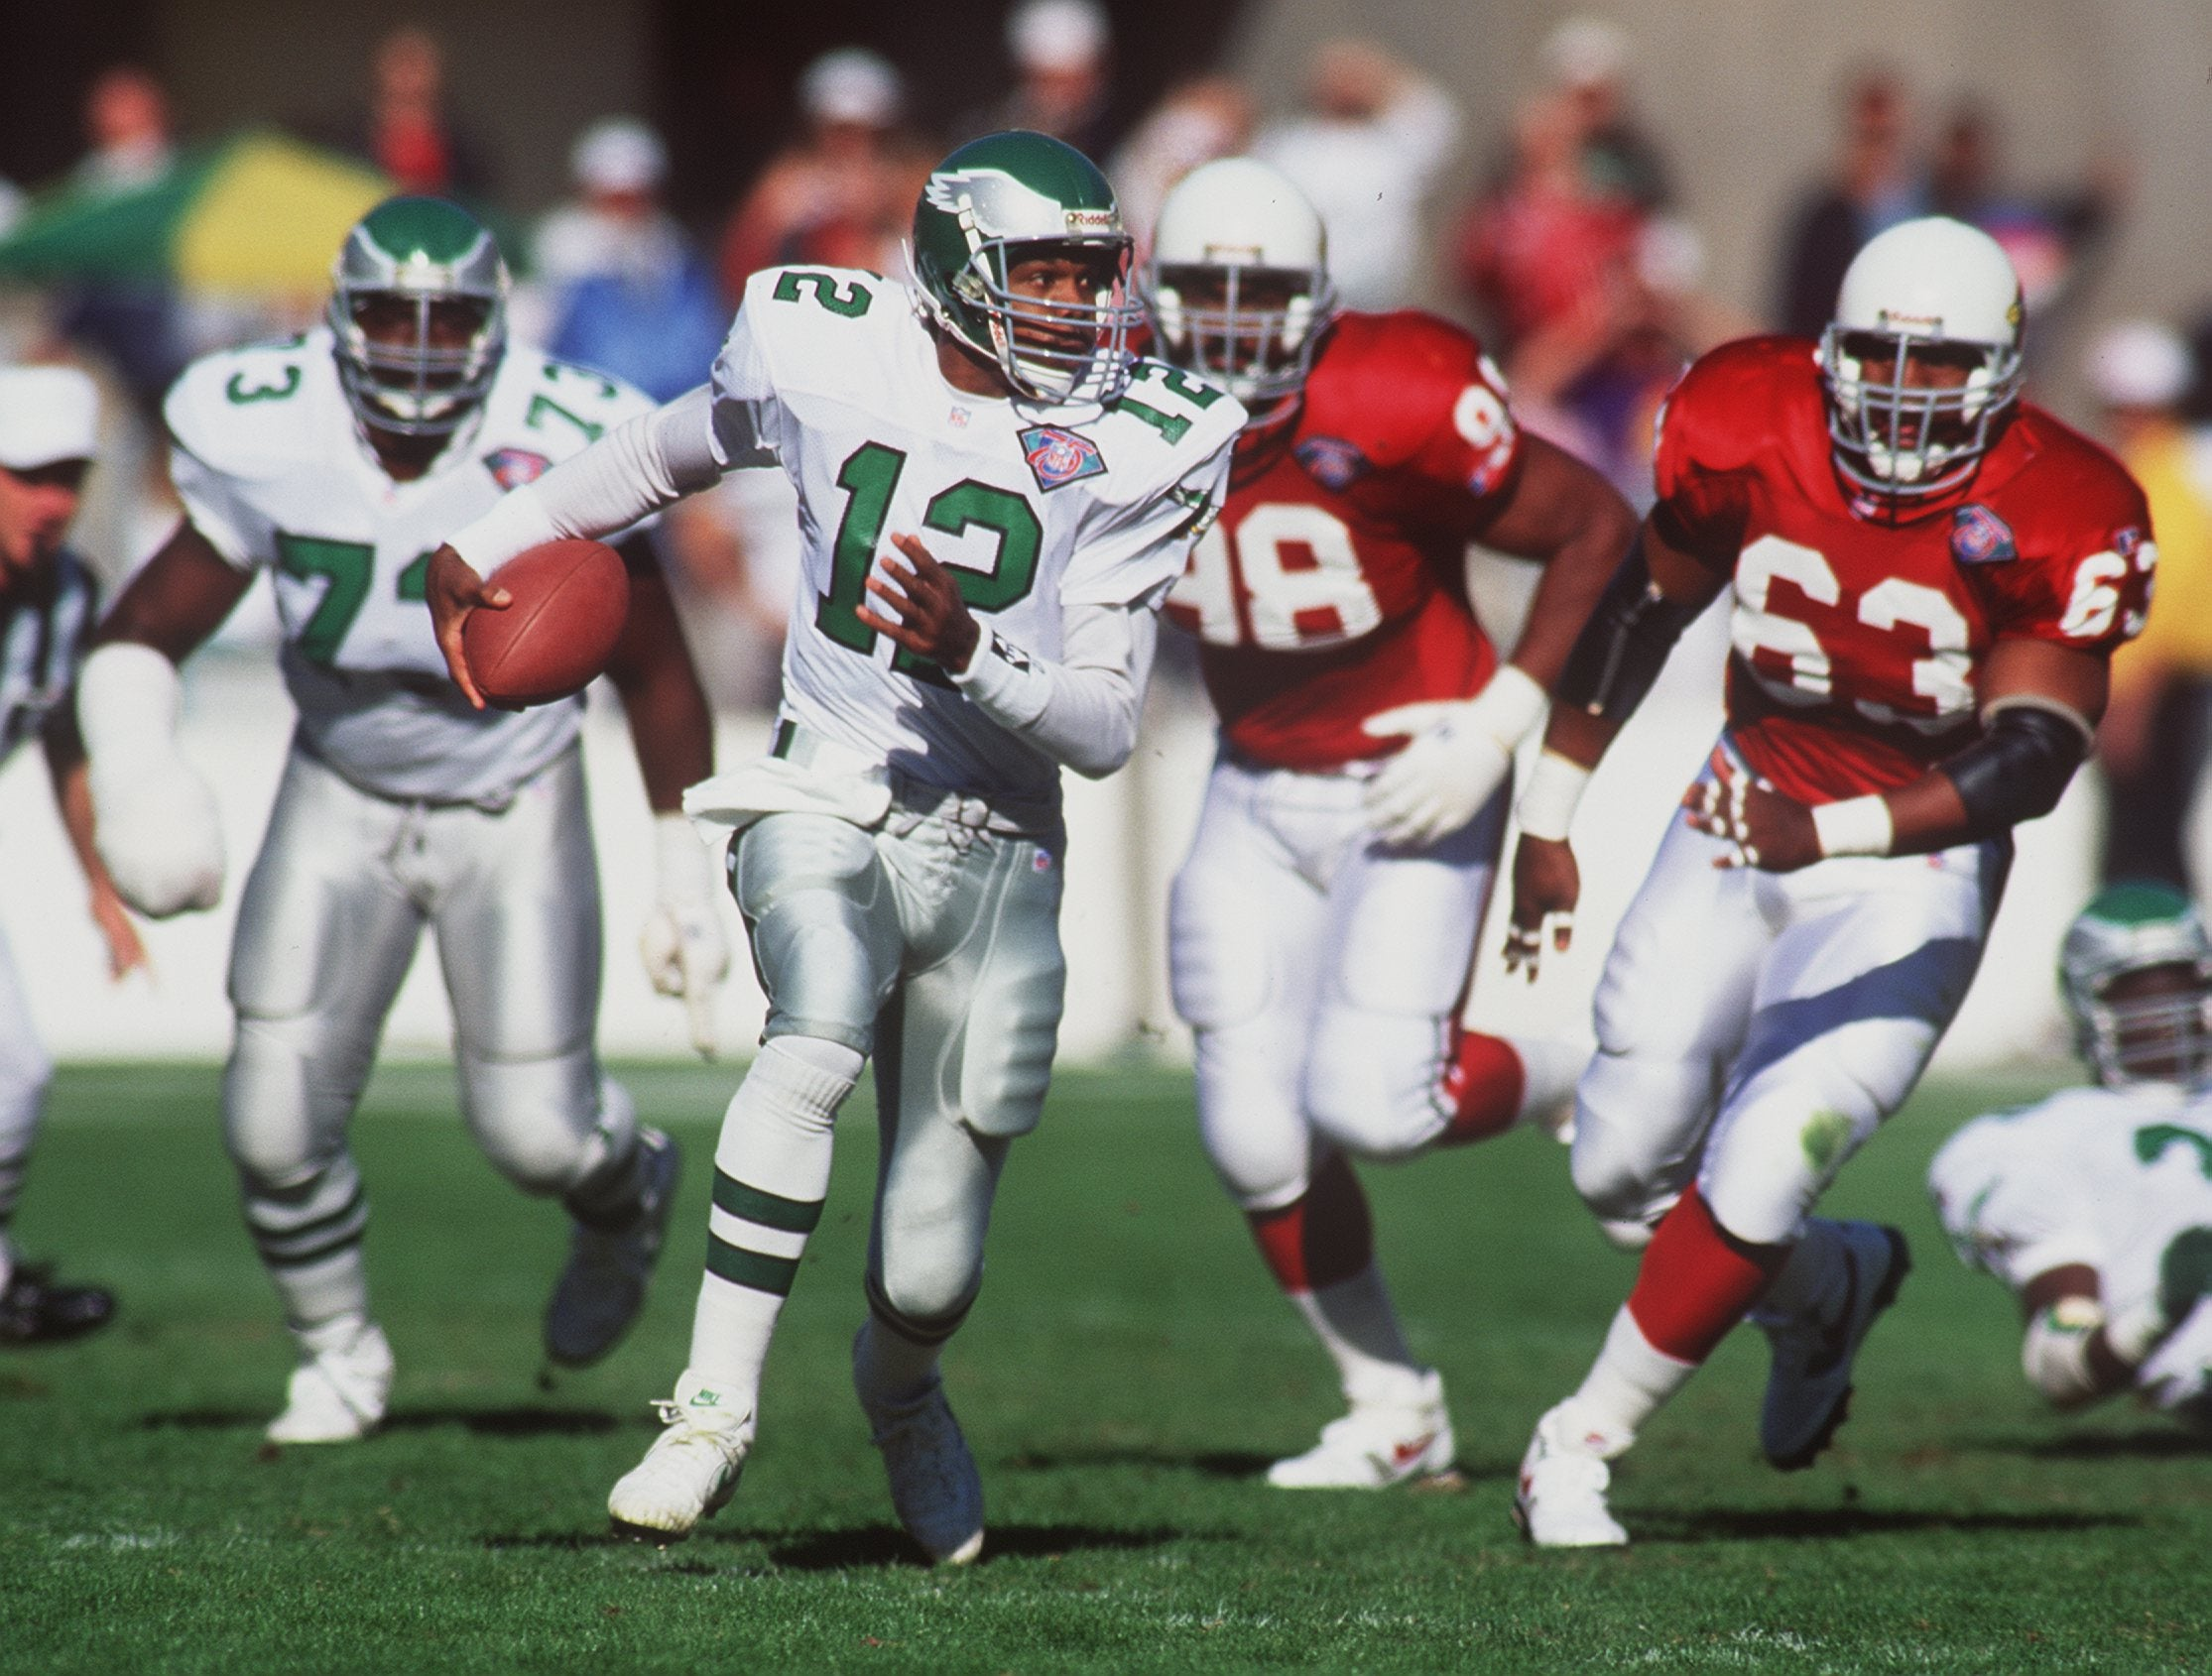 Randall Cunningham: The Author Of NFL's Greatest Individual Play